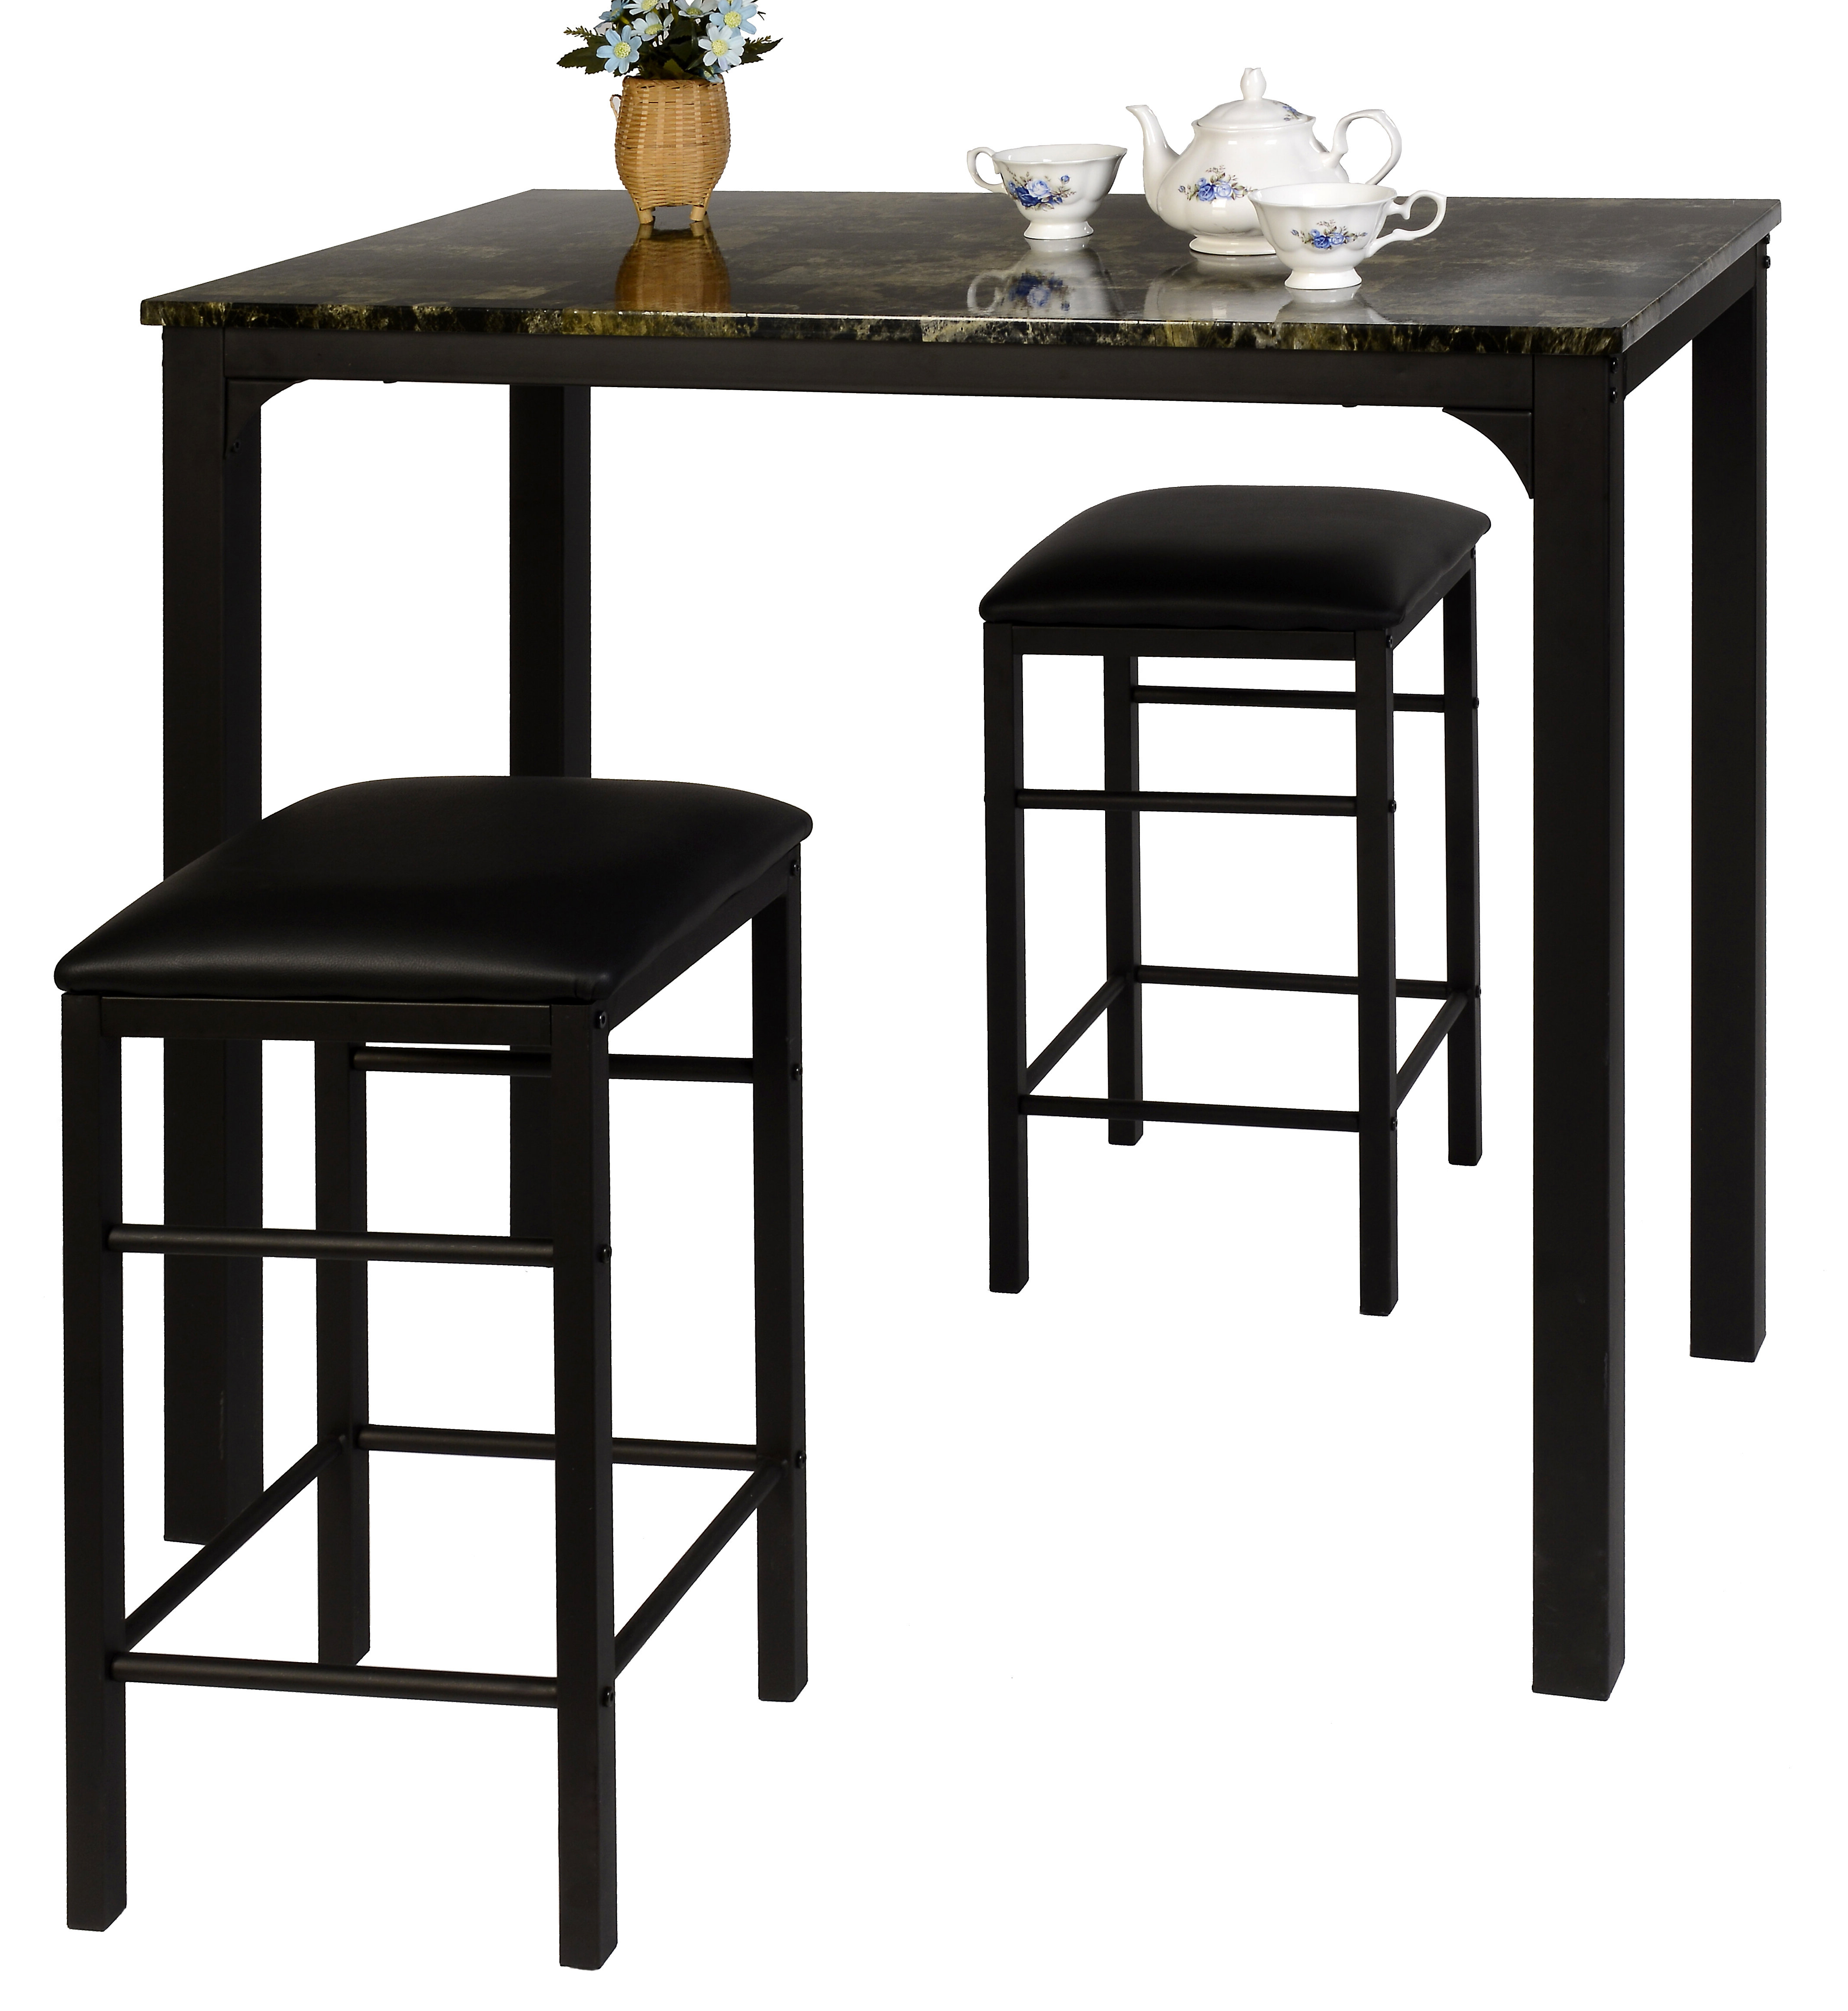 Turnalar 5 Piece Dining Sets Pertaining To Widely Used Ebern Designs Lillard 3 Piece Breakfast Nook Dining Set (View 11 of 25)